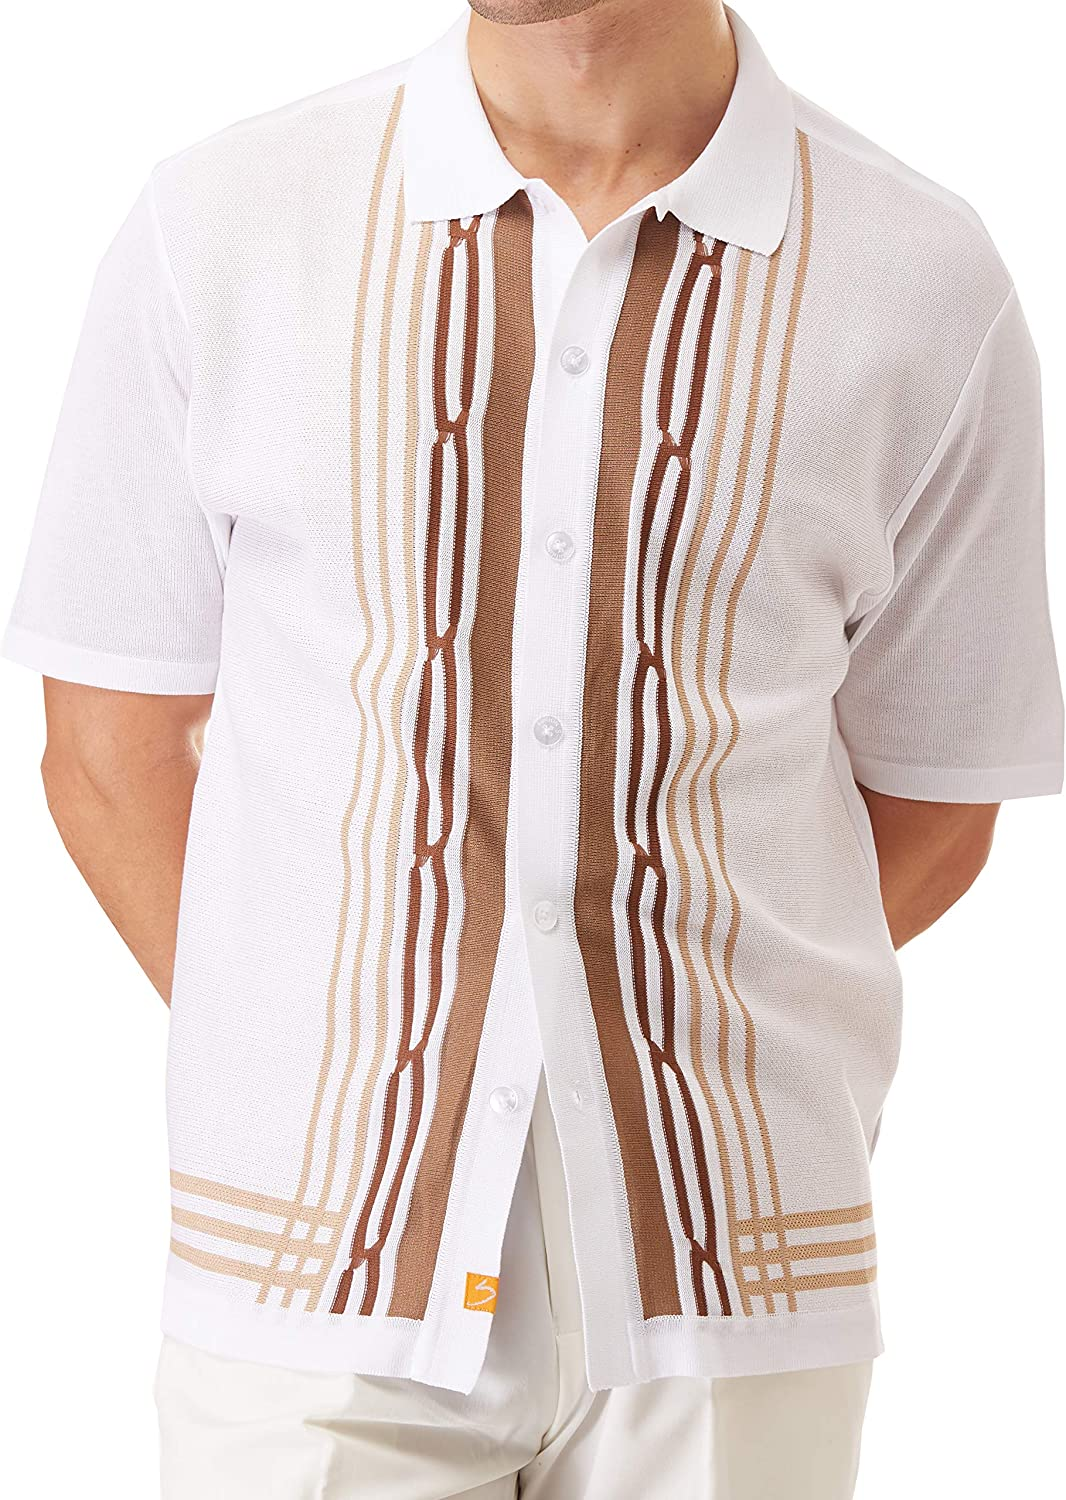 1950s Men's Shirt Styles – Dress Shirts to Casual Pullovers SAFIRE SILK INC. Edition S Mens Short Sleeve Knit Shirt - California Rockabilly Style: Multi Stripes $49.00 AT vintagedancer.com